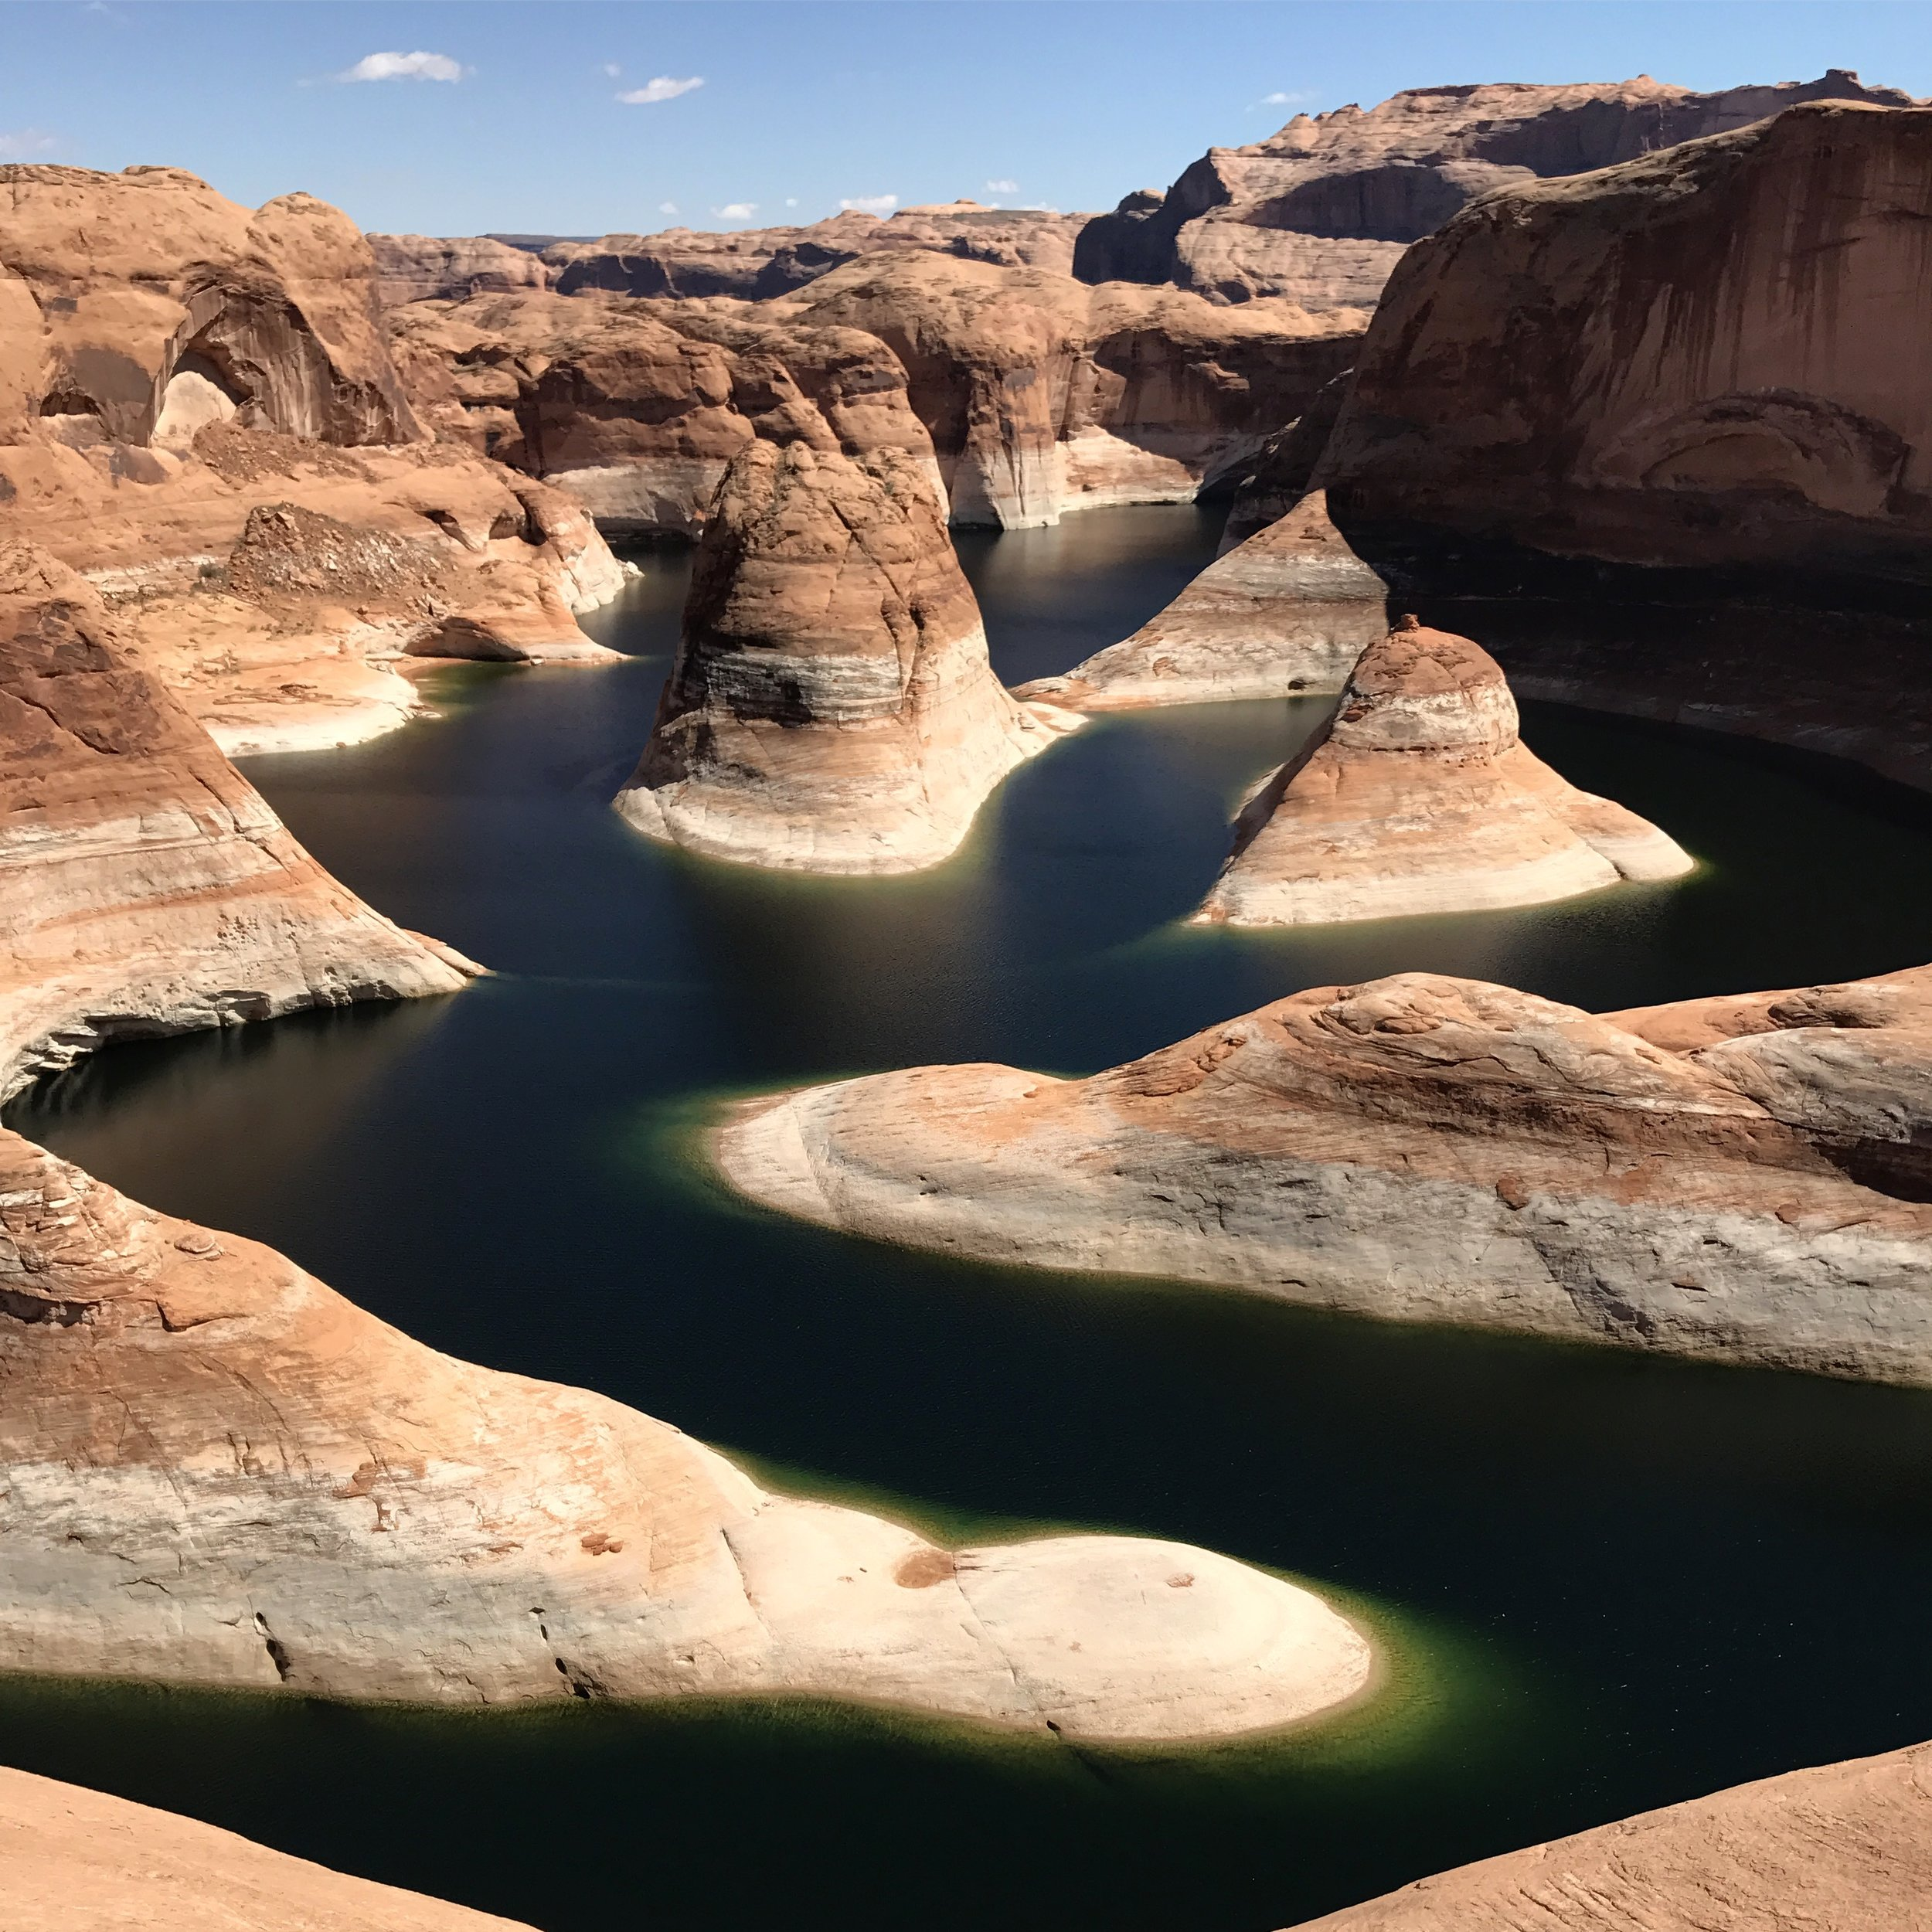 Reflection Canyon glowing in the afternoon light